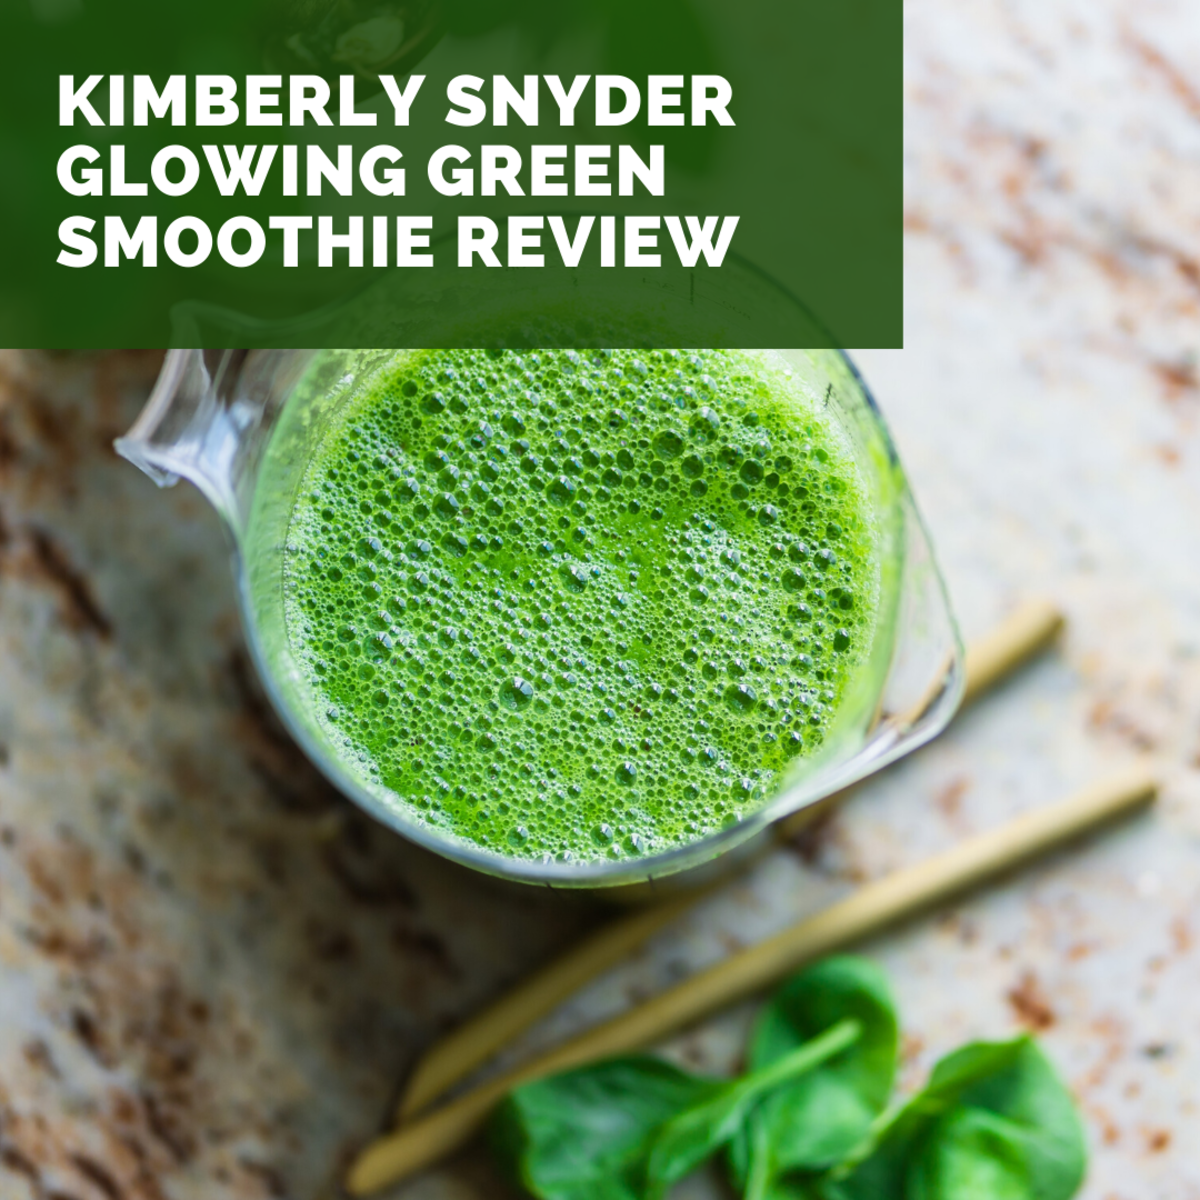 Learn whether or not the Kimberly Snyder smoothie is worth it or not.